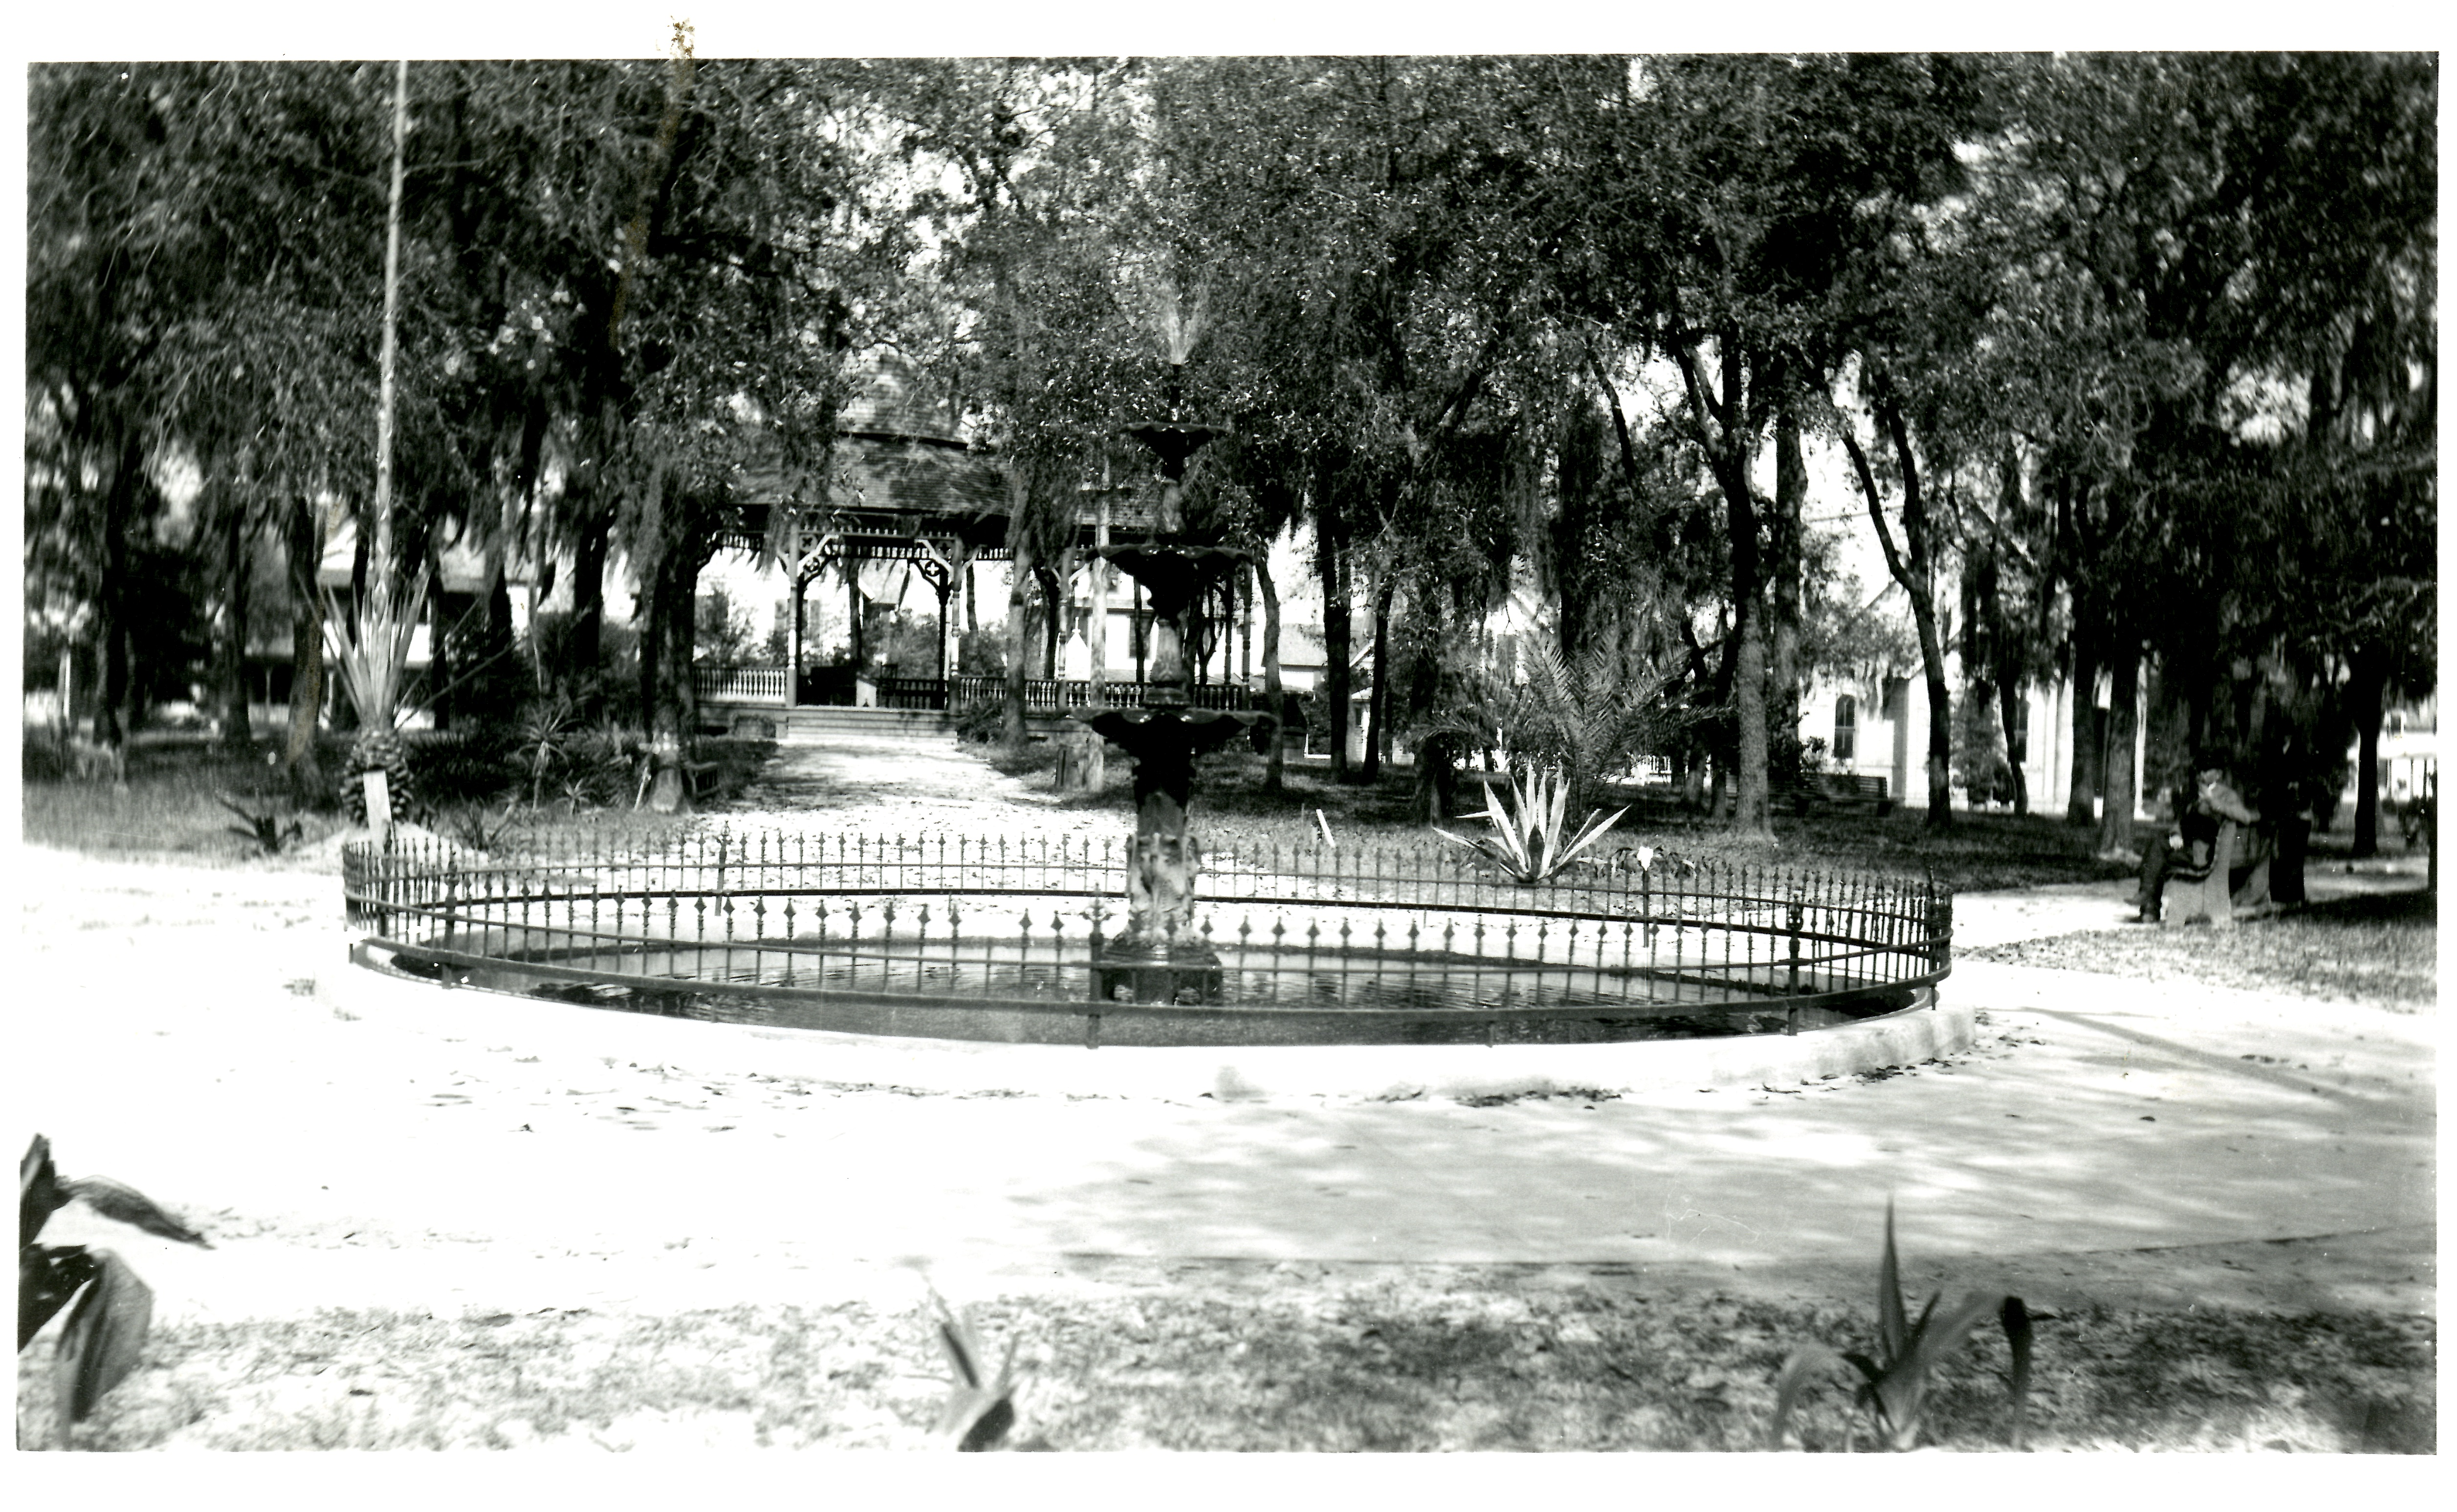 Fountain in Williams Park, St. Petersburg, Florida, circa 1908. This fountain, once located in front of the Williams Park bandstand, was one of the improvements paid for and maintained by the Women's Town Improvement Association.